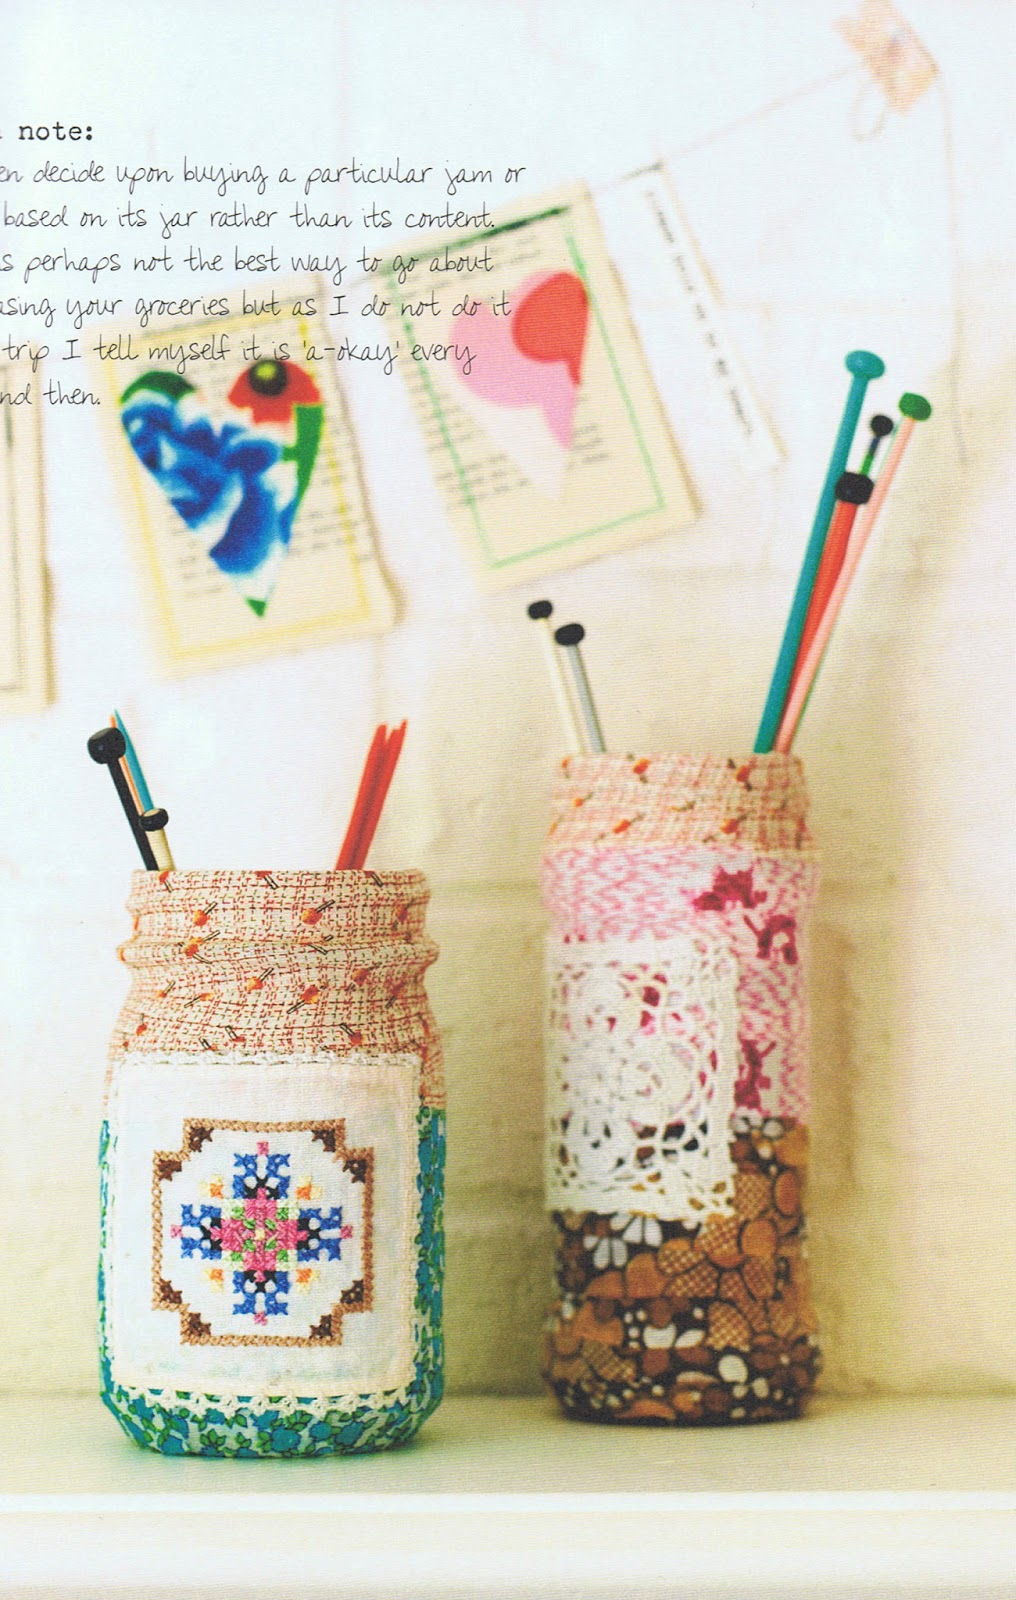 image granny chic book tif fussell rachelle blondel fabric covered jars